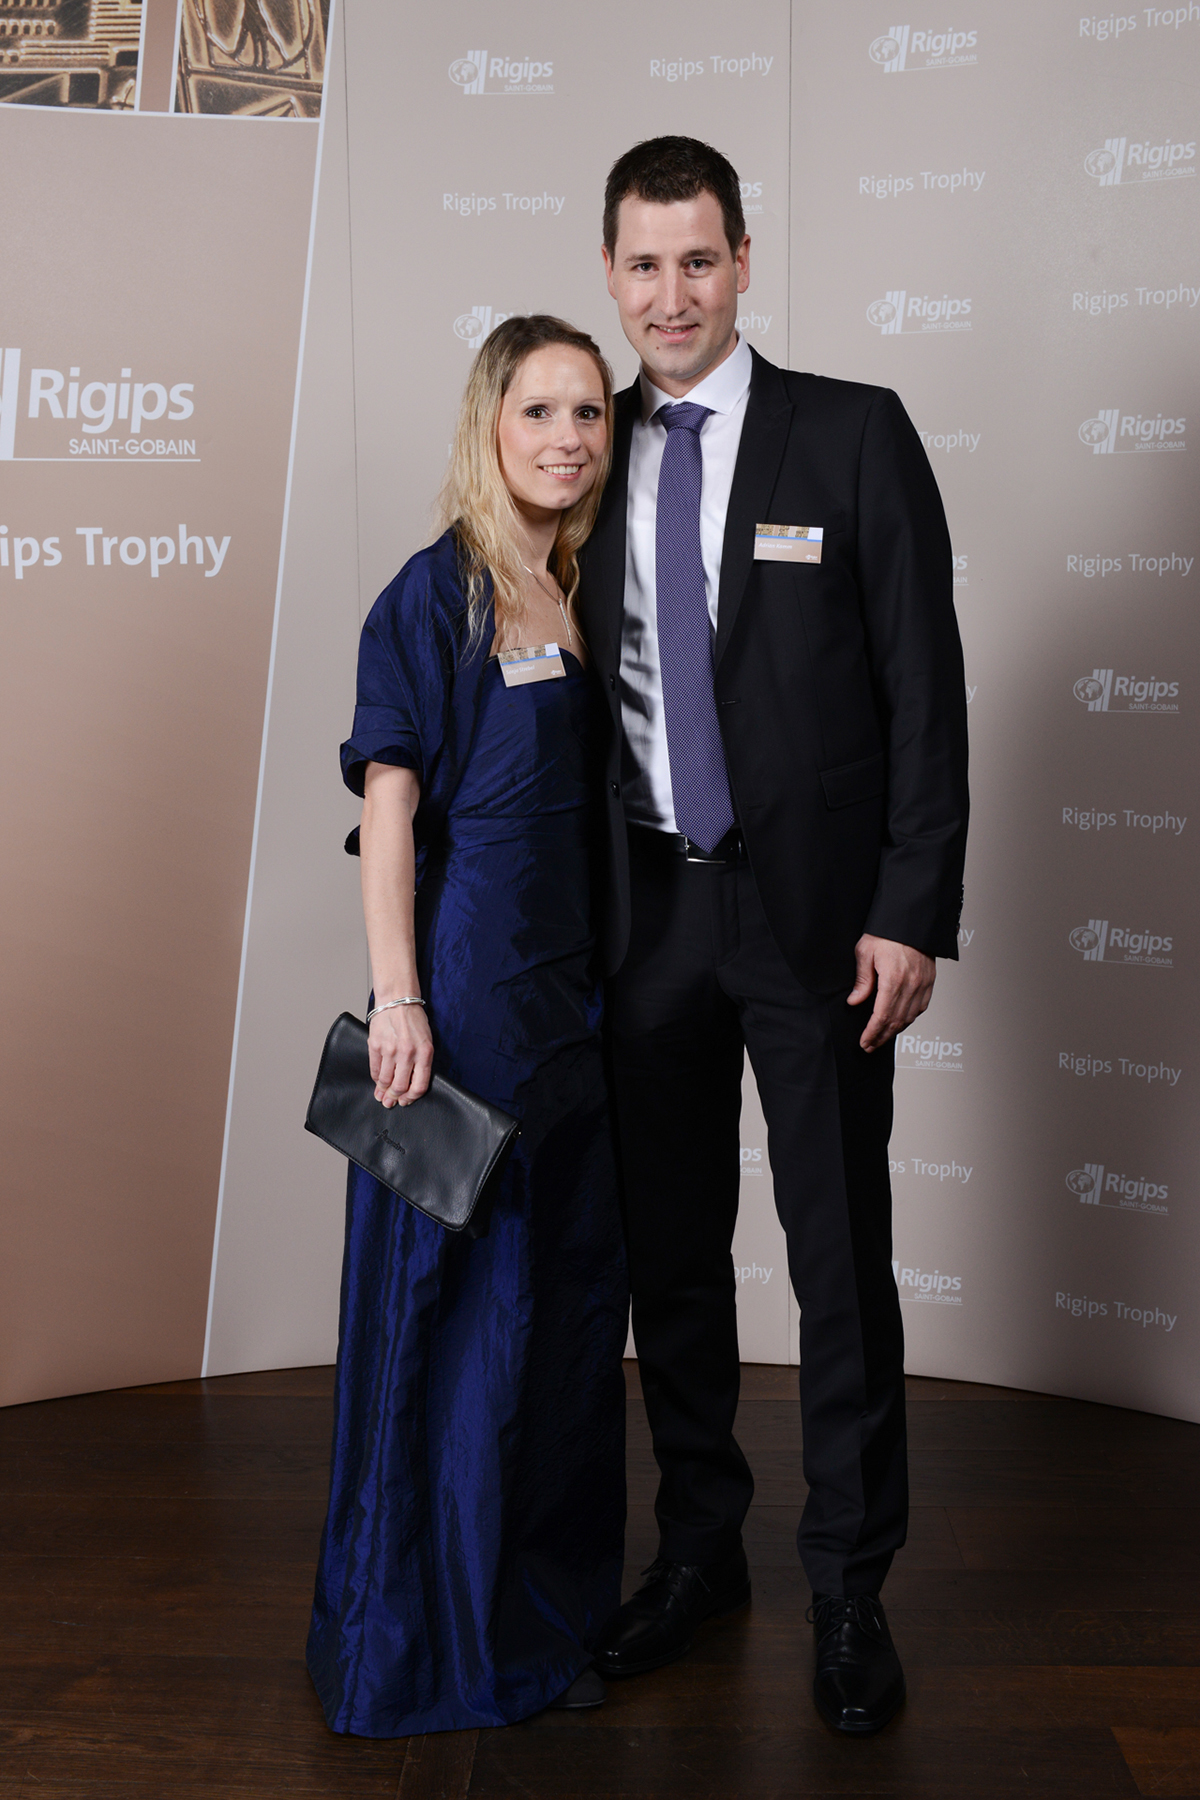 Rigips Trophy 16_0240